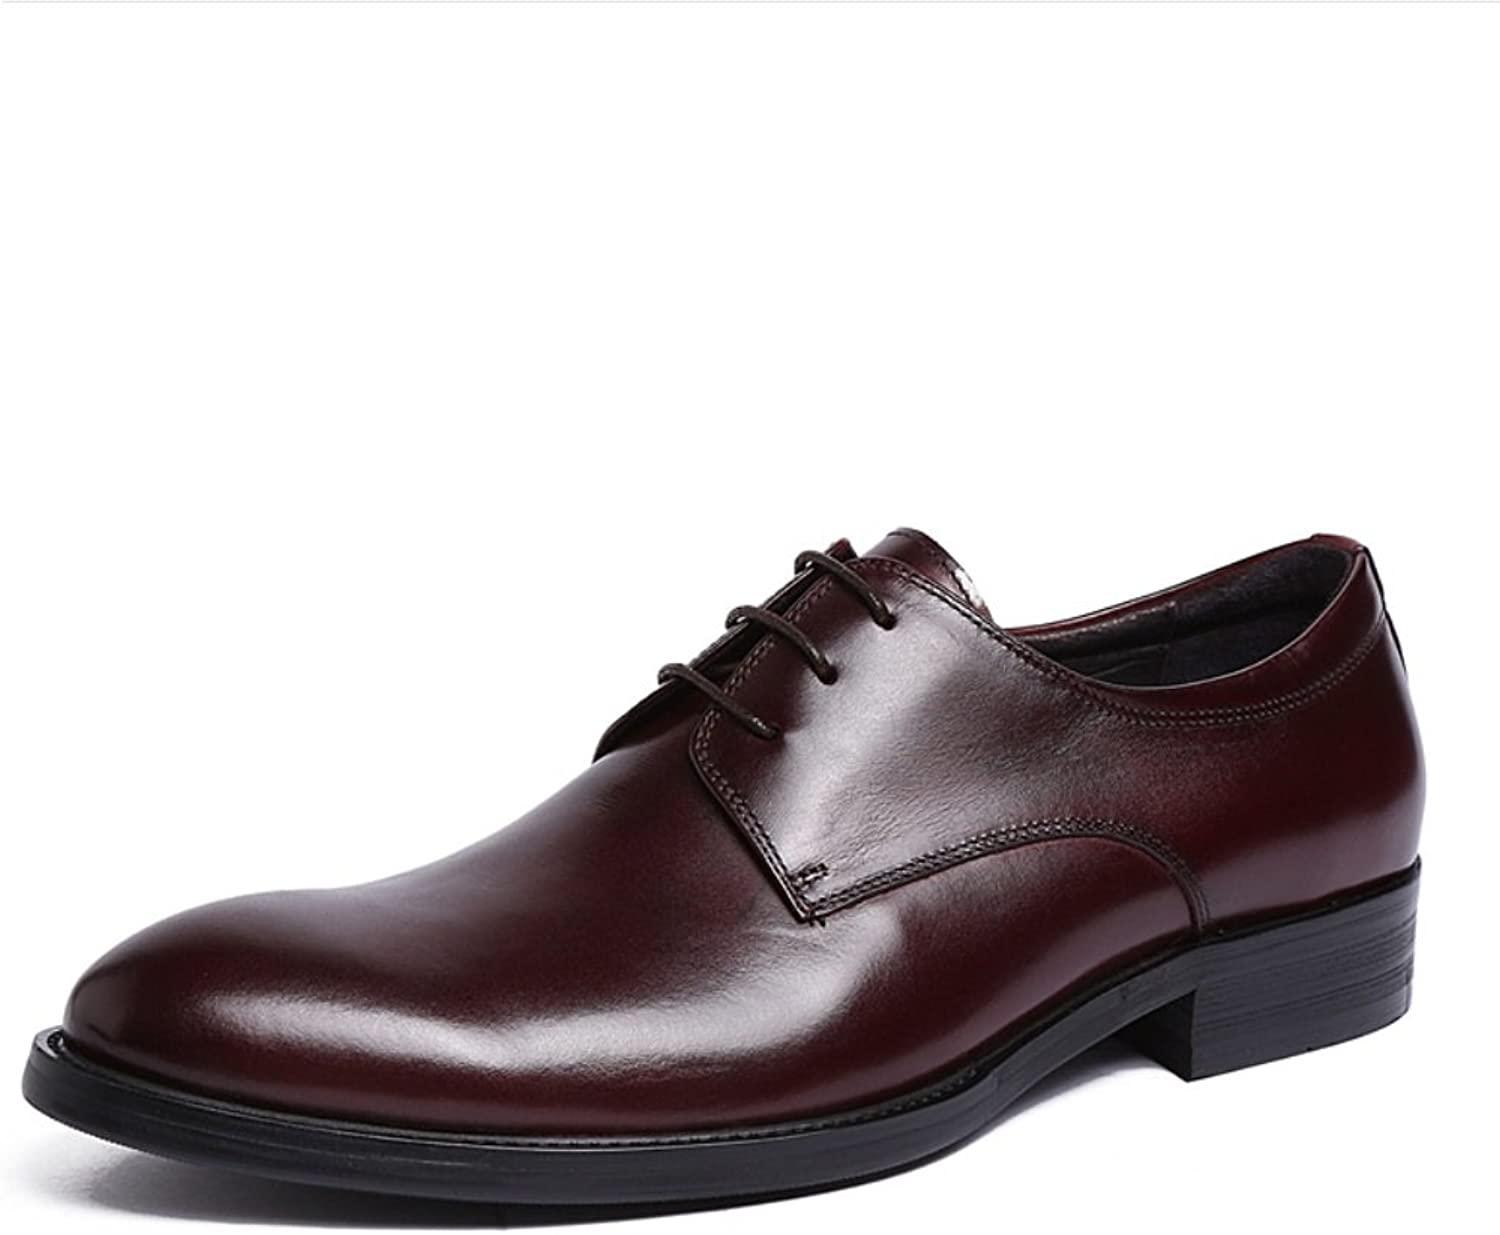 SHANGWU Men's Genuine Leather Leather shoes Men's Dress shoes Pure Leather Classic Wedding shoes Handmade Cattle Leather shoes